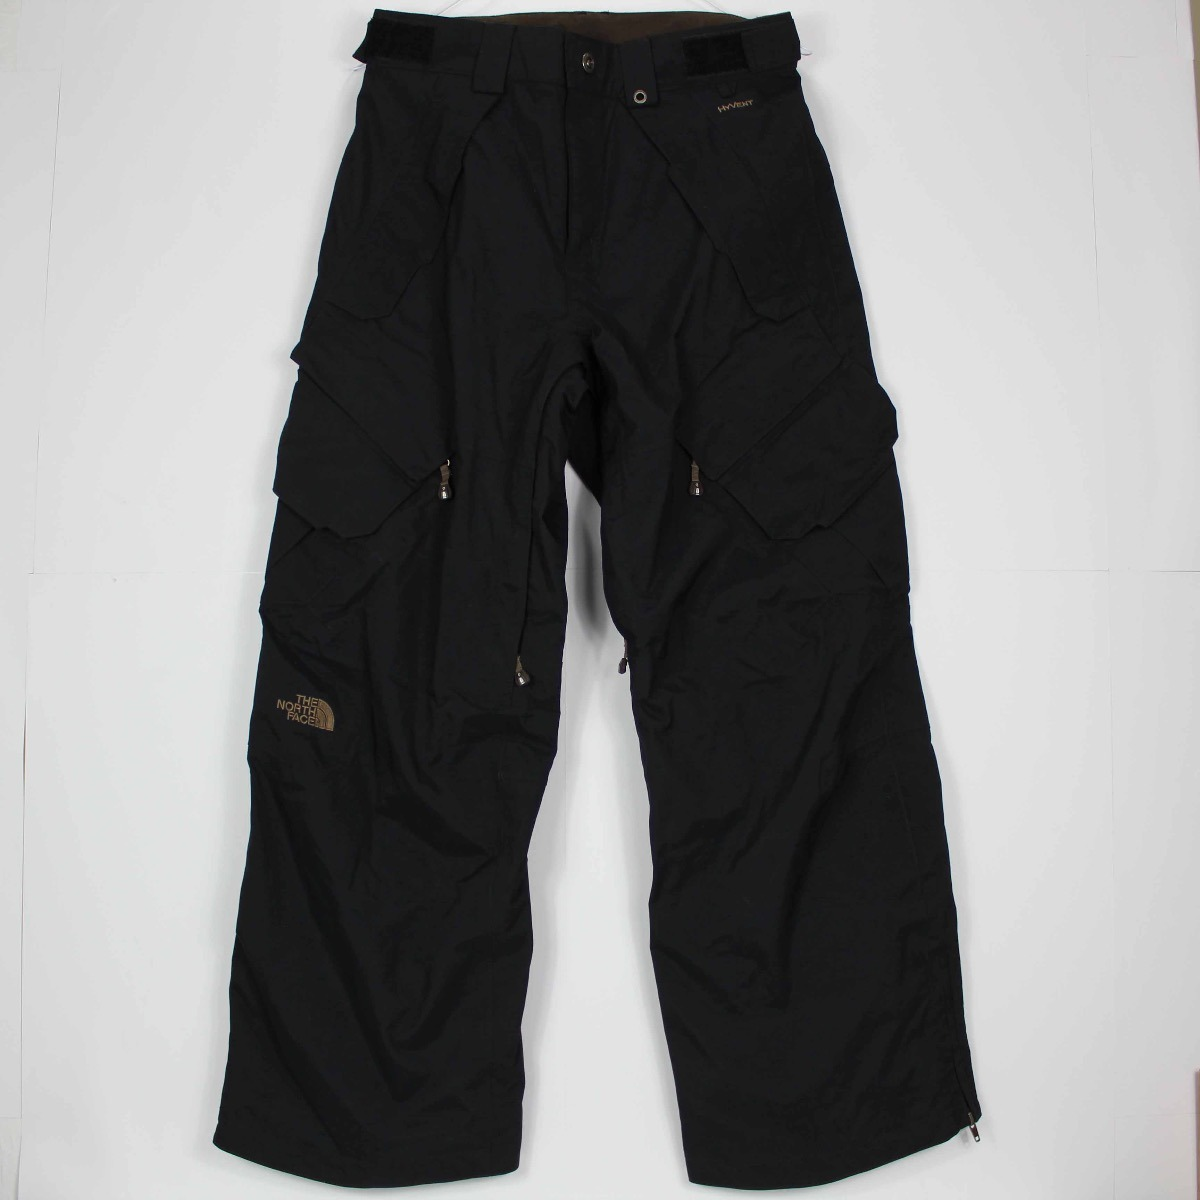 hombre nieve zoom para s de the talla Cargando cryptic north pantalon face  qW60OCWp 28fea972160